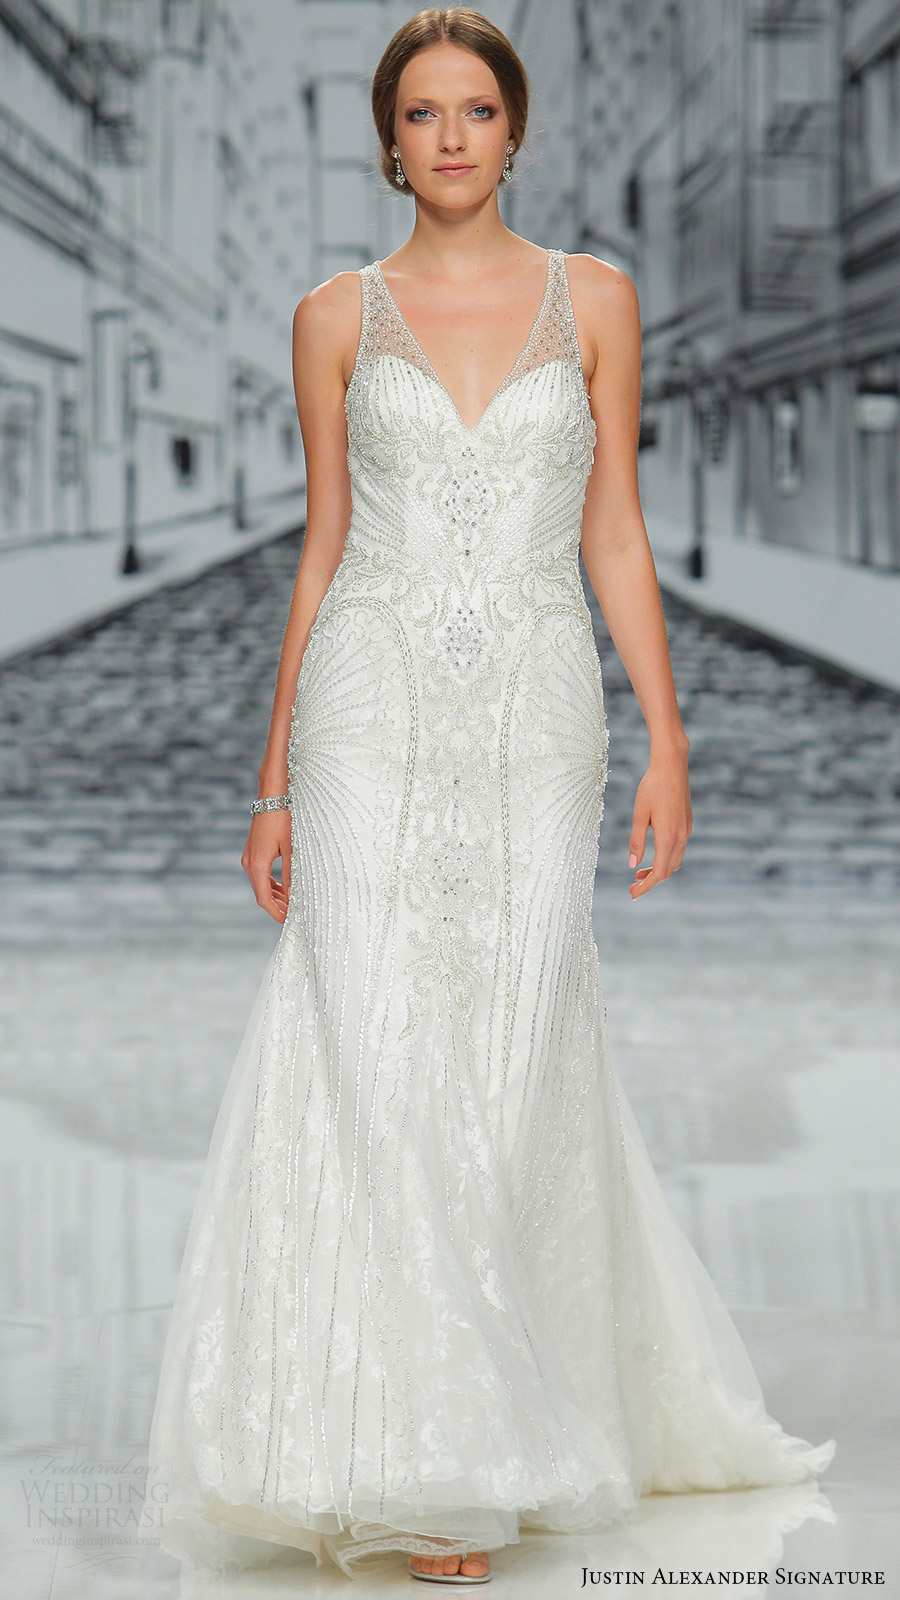 justin alexander signature spring 2017 sleeveless veneck fully beaded sheath wedding dress (9839) mv